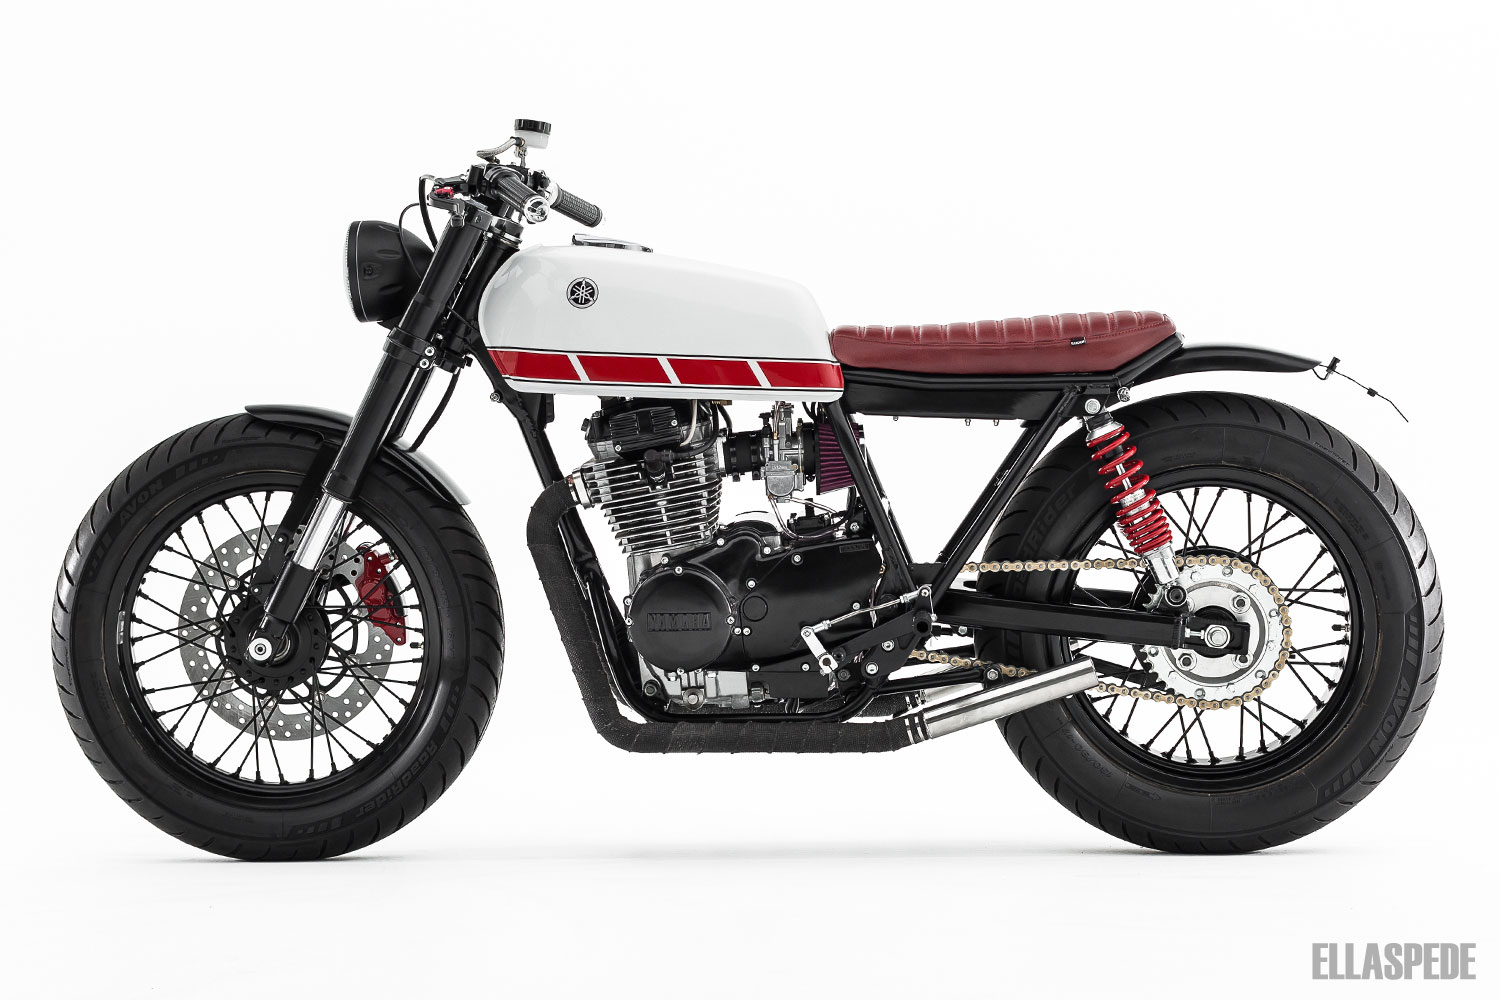 racing caf yamaha xs 400 1977 by ellaspede. Black Bedroom Furniture Sets. Home Design Ideas